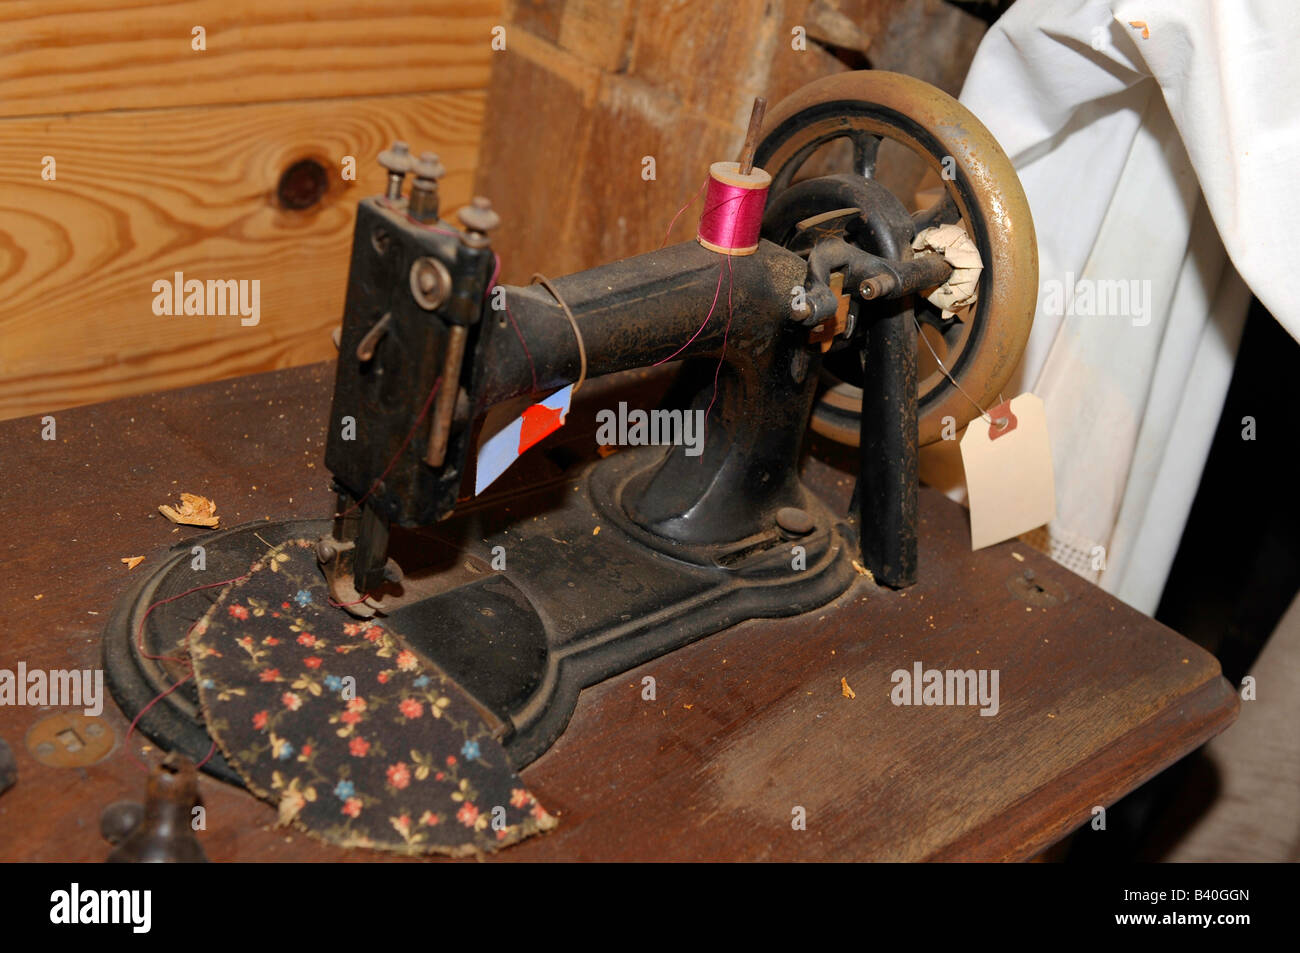 Old antique foot driven sewing machine - Stock Image